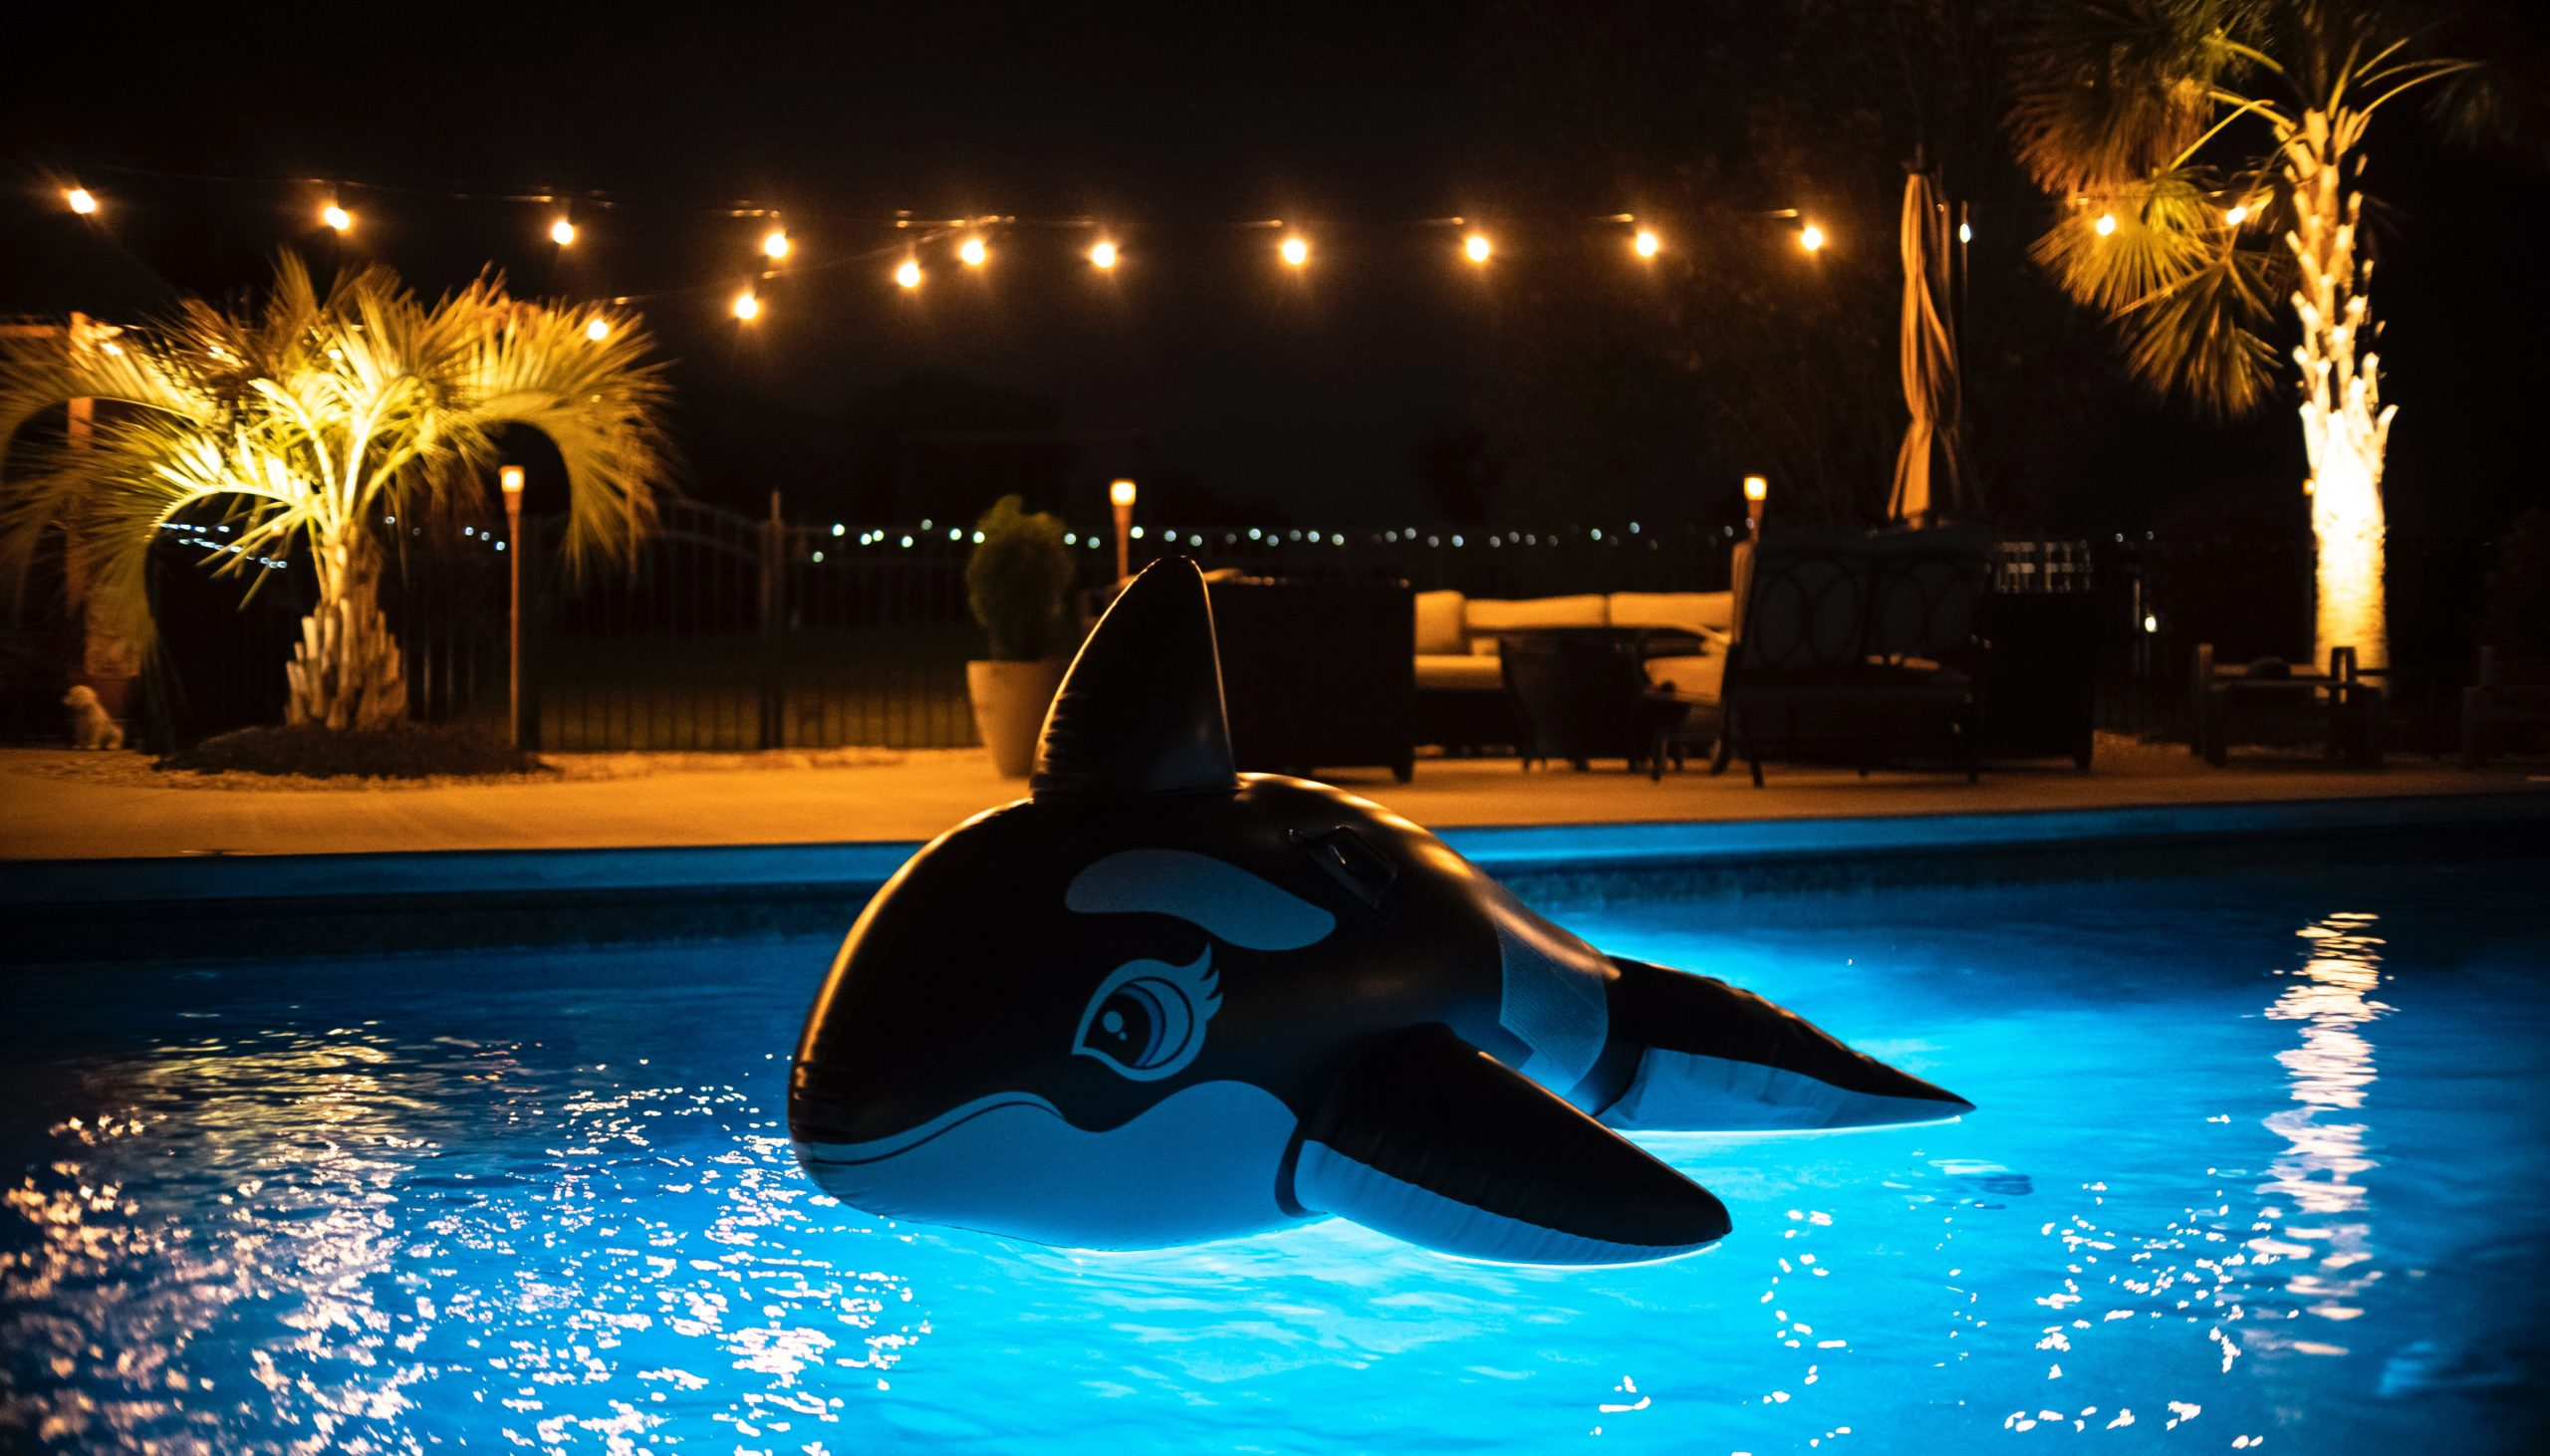 inflatable killer whale / orca in a pool.